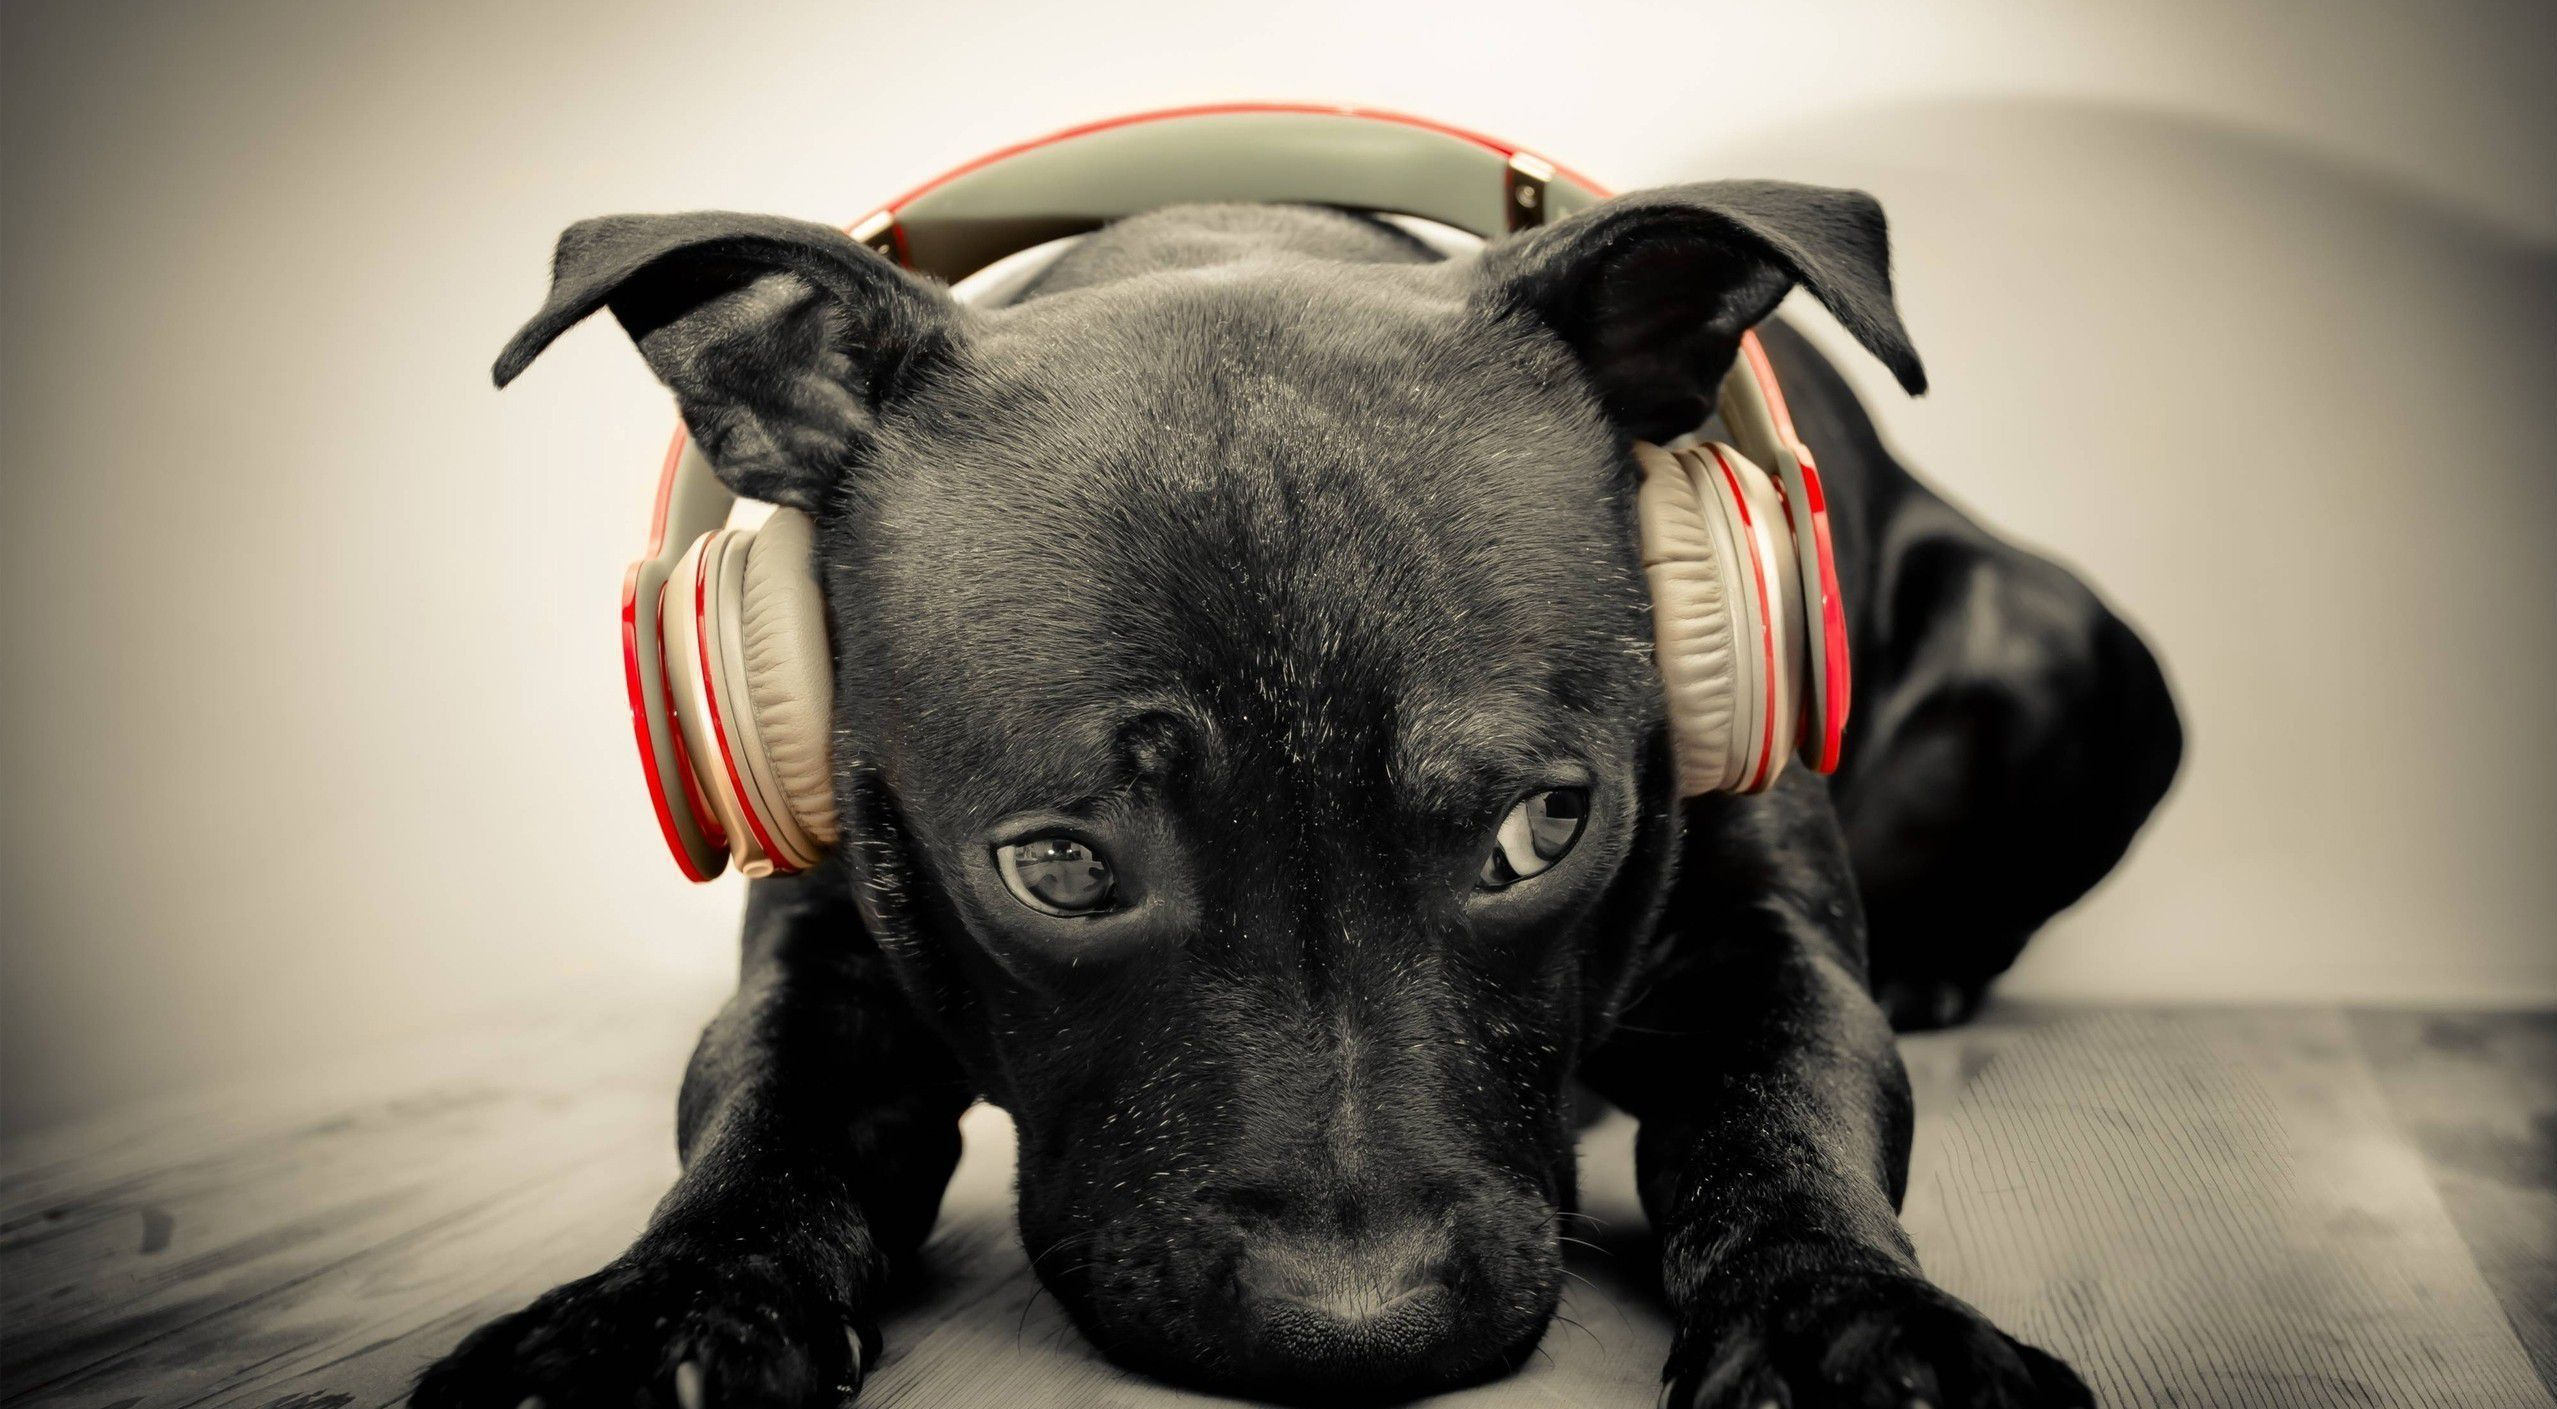 Beats By Dre Background